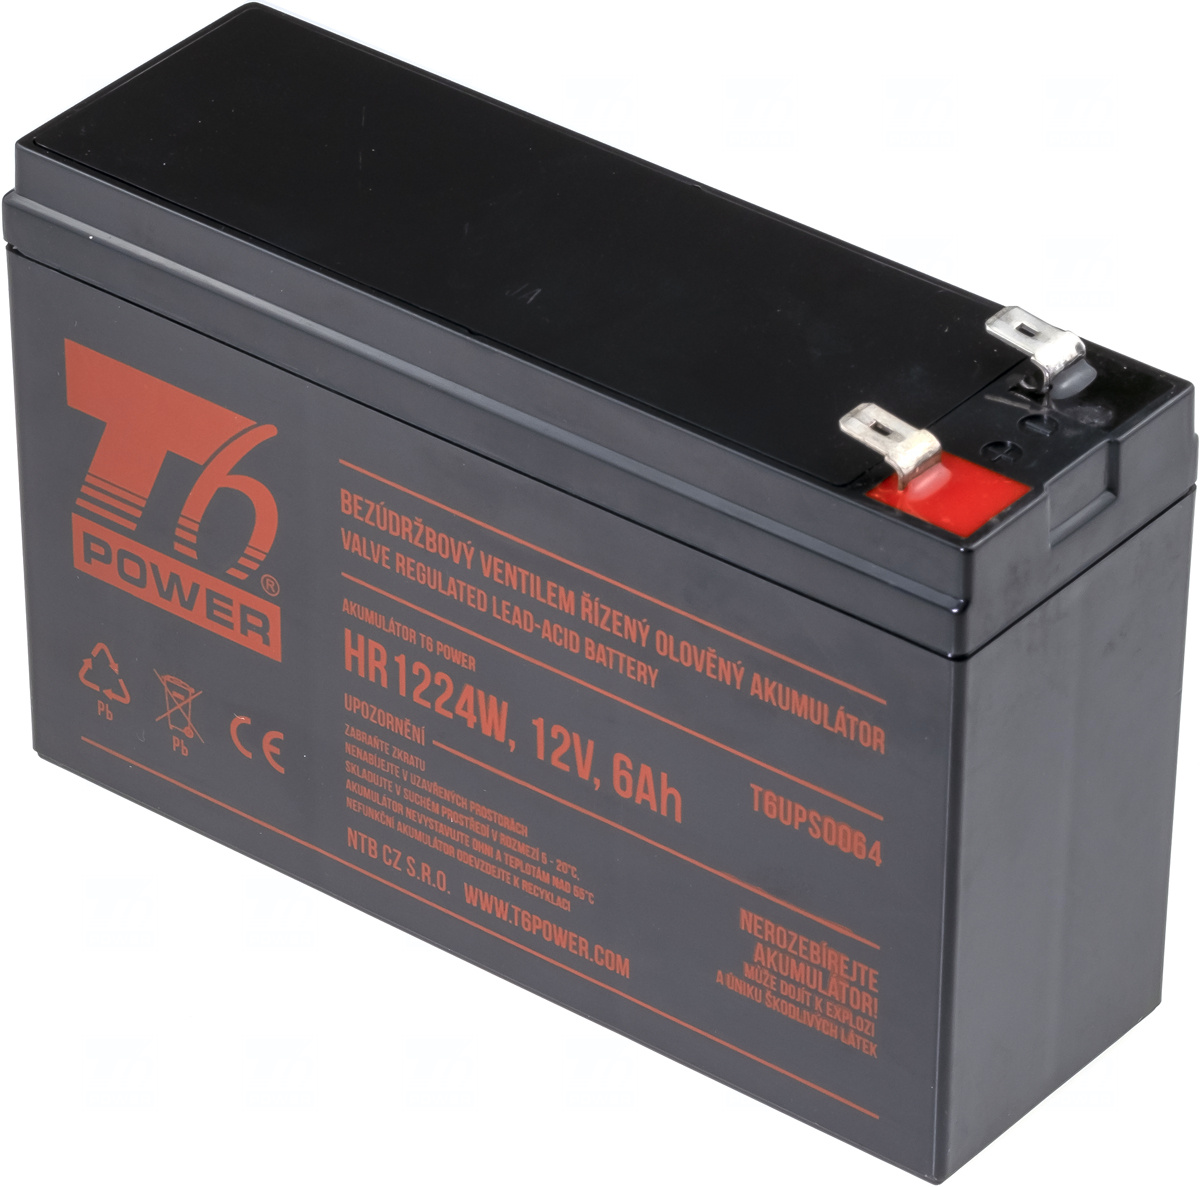 Akumulátor T6 Power HR1224W, 12V, 6Ah